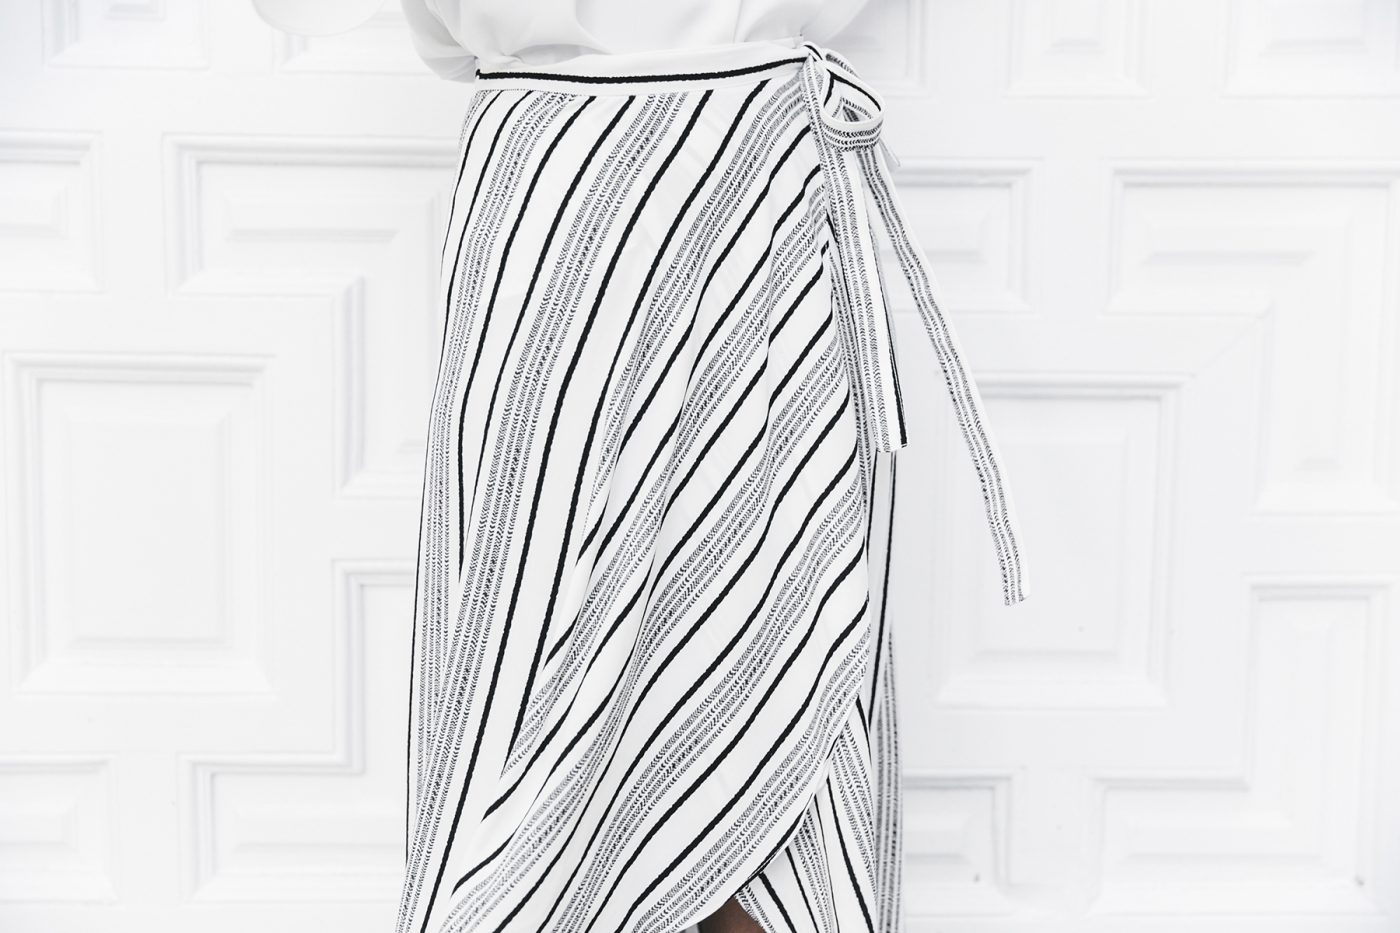 River_Island-El_Imparcial-Striped_SKirt-Off_Shoulders_Top-Lace_Up_Sandals-CHanel_Vintage_Bag-53